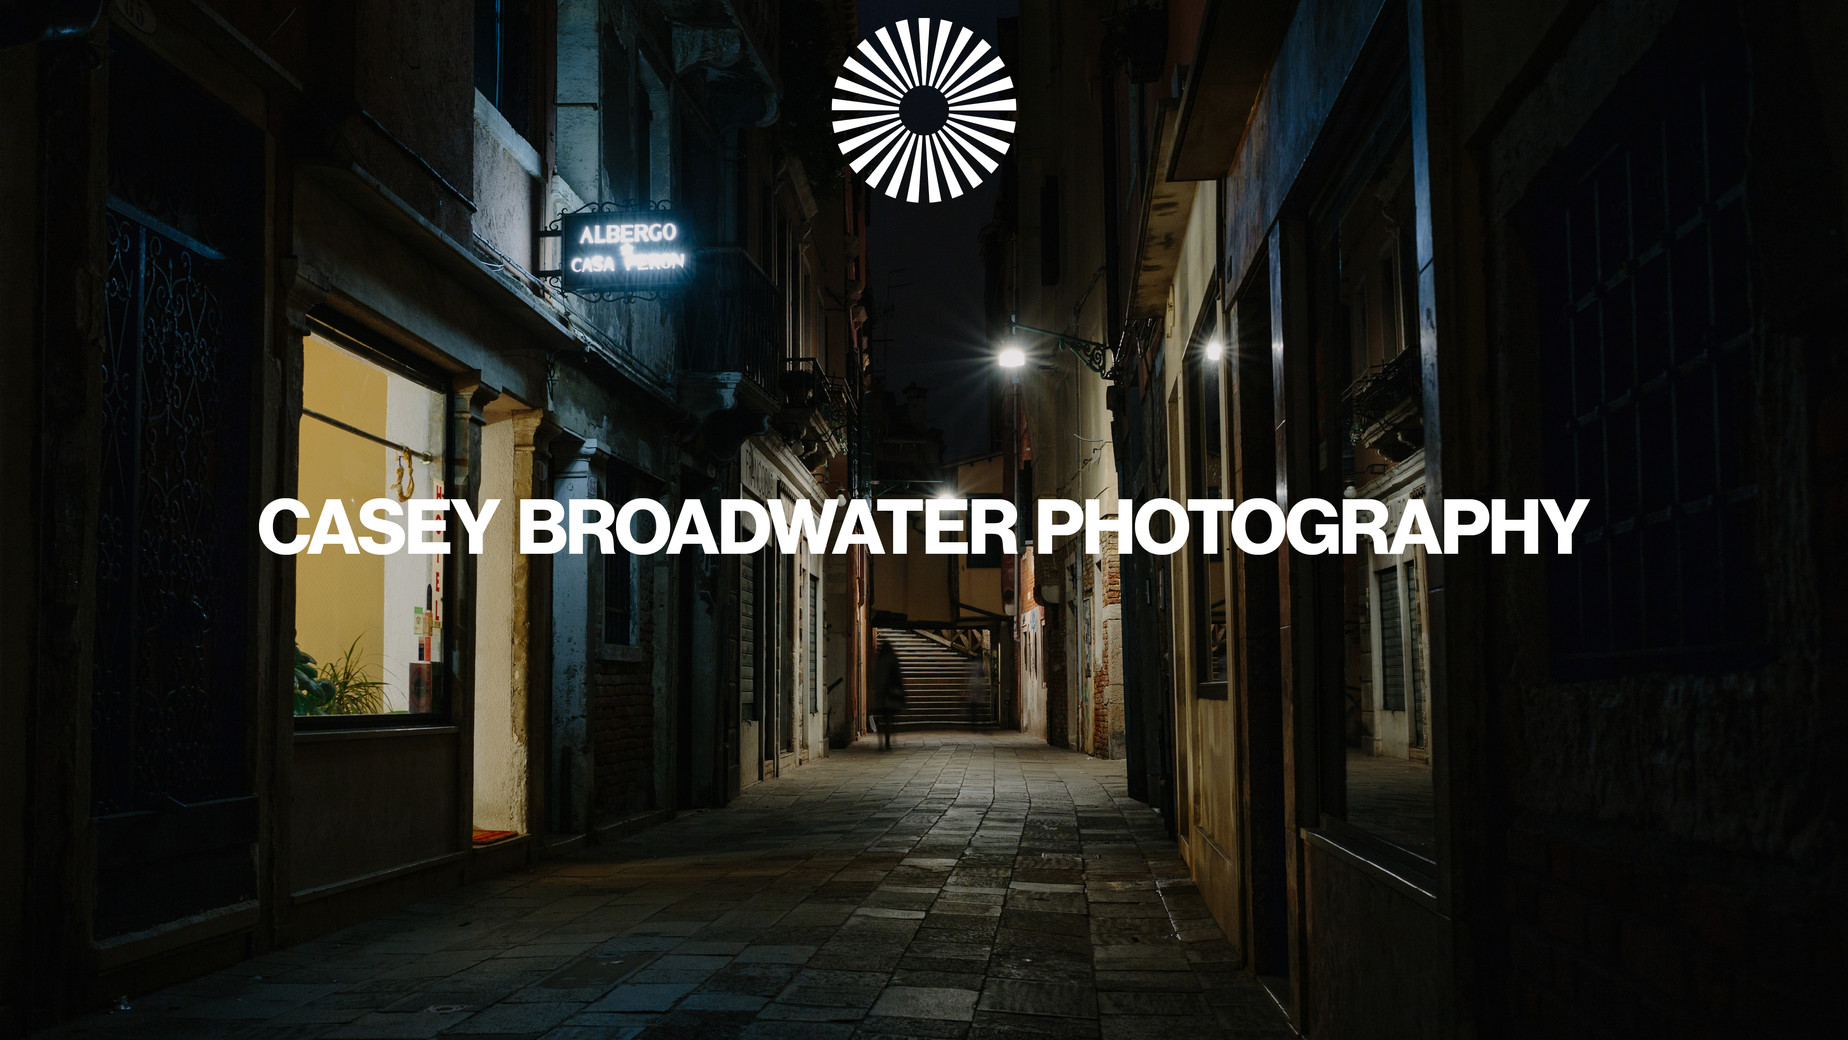 Casey Broadwater - Identity project image